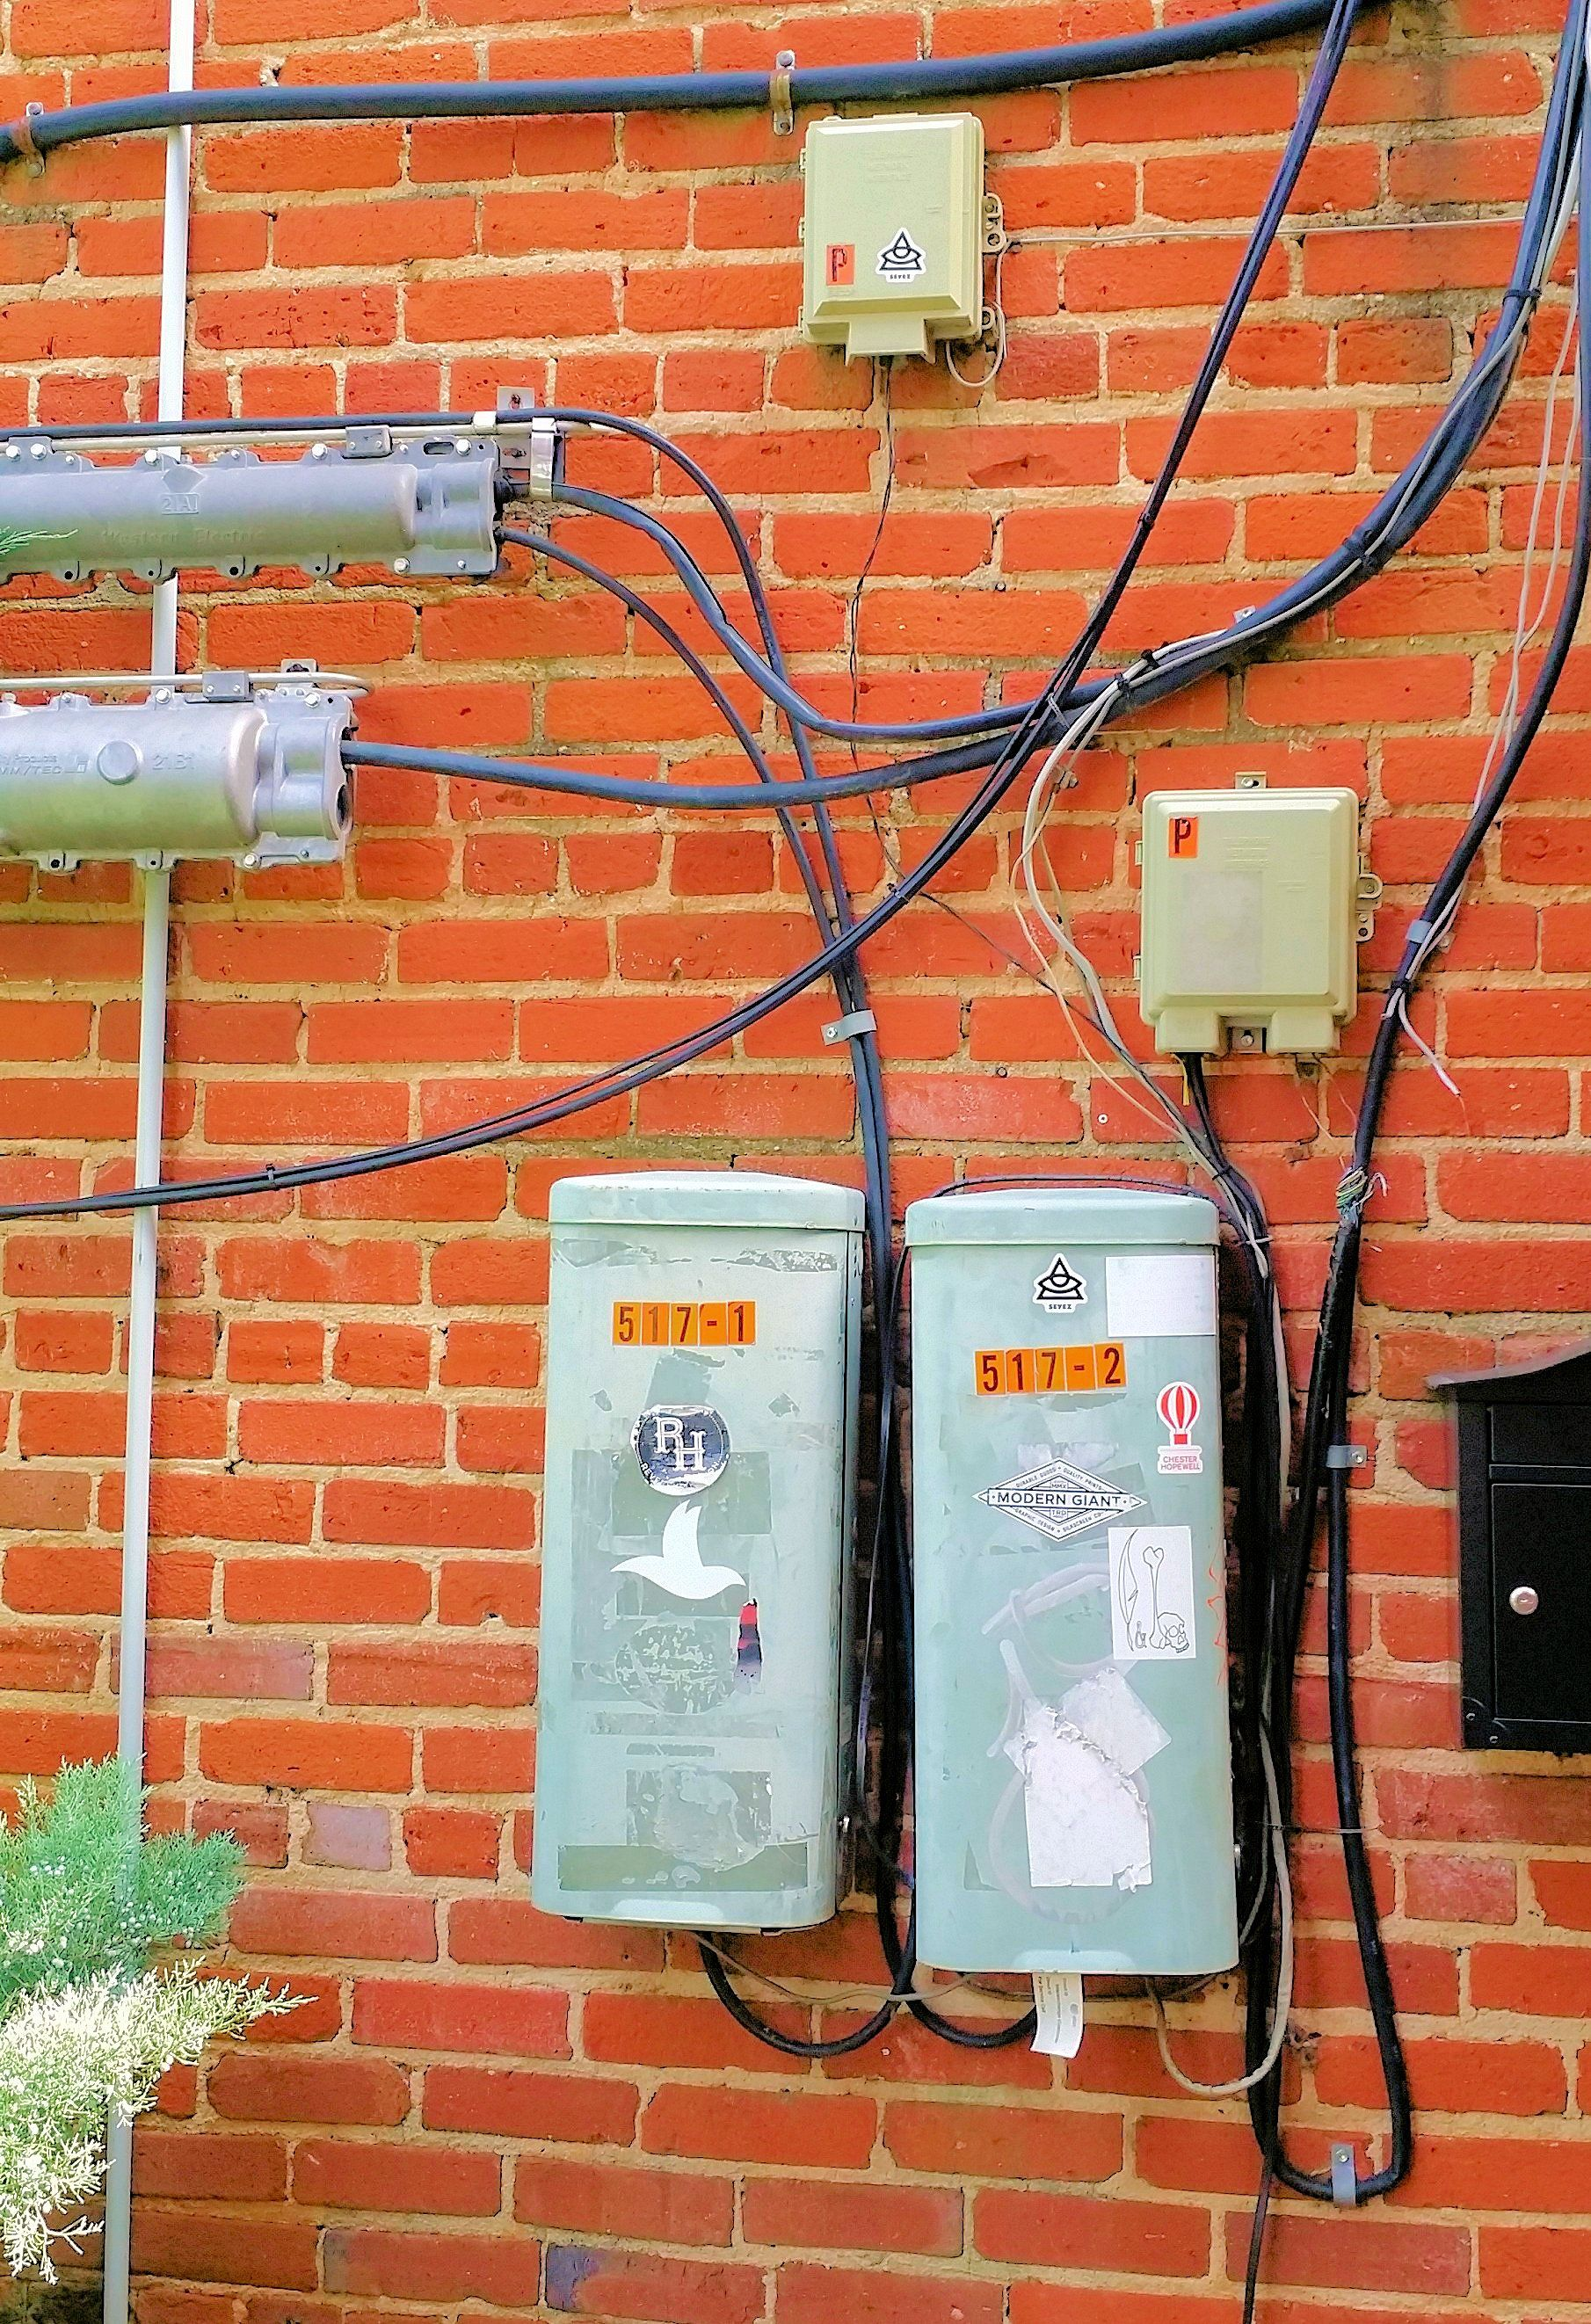 small resolution of cable terminals splice cases outside network interfaces on side of commercial building 2015